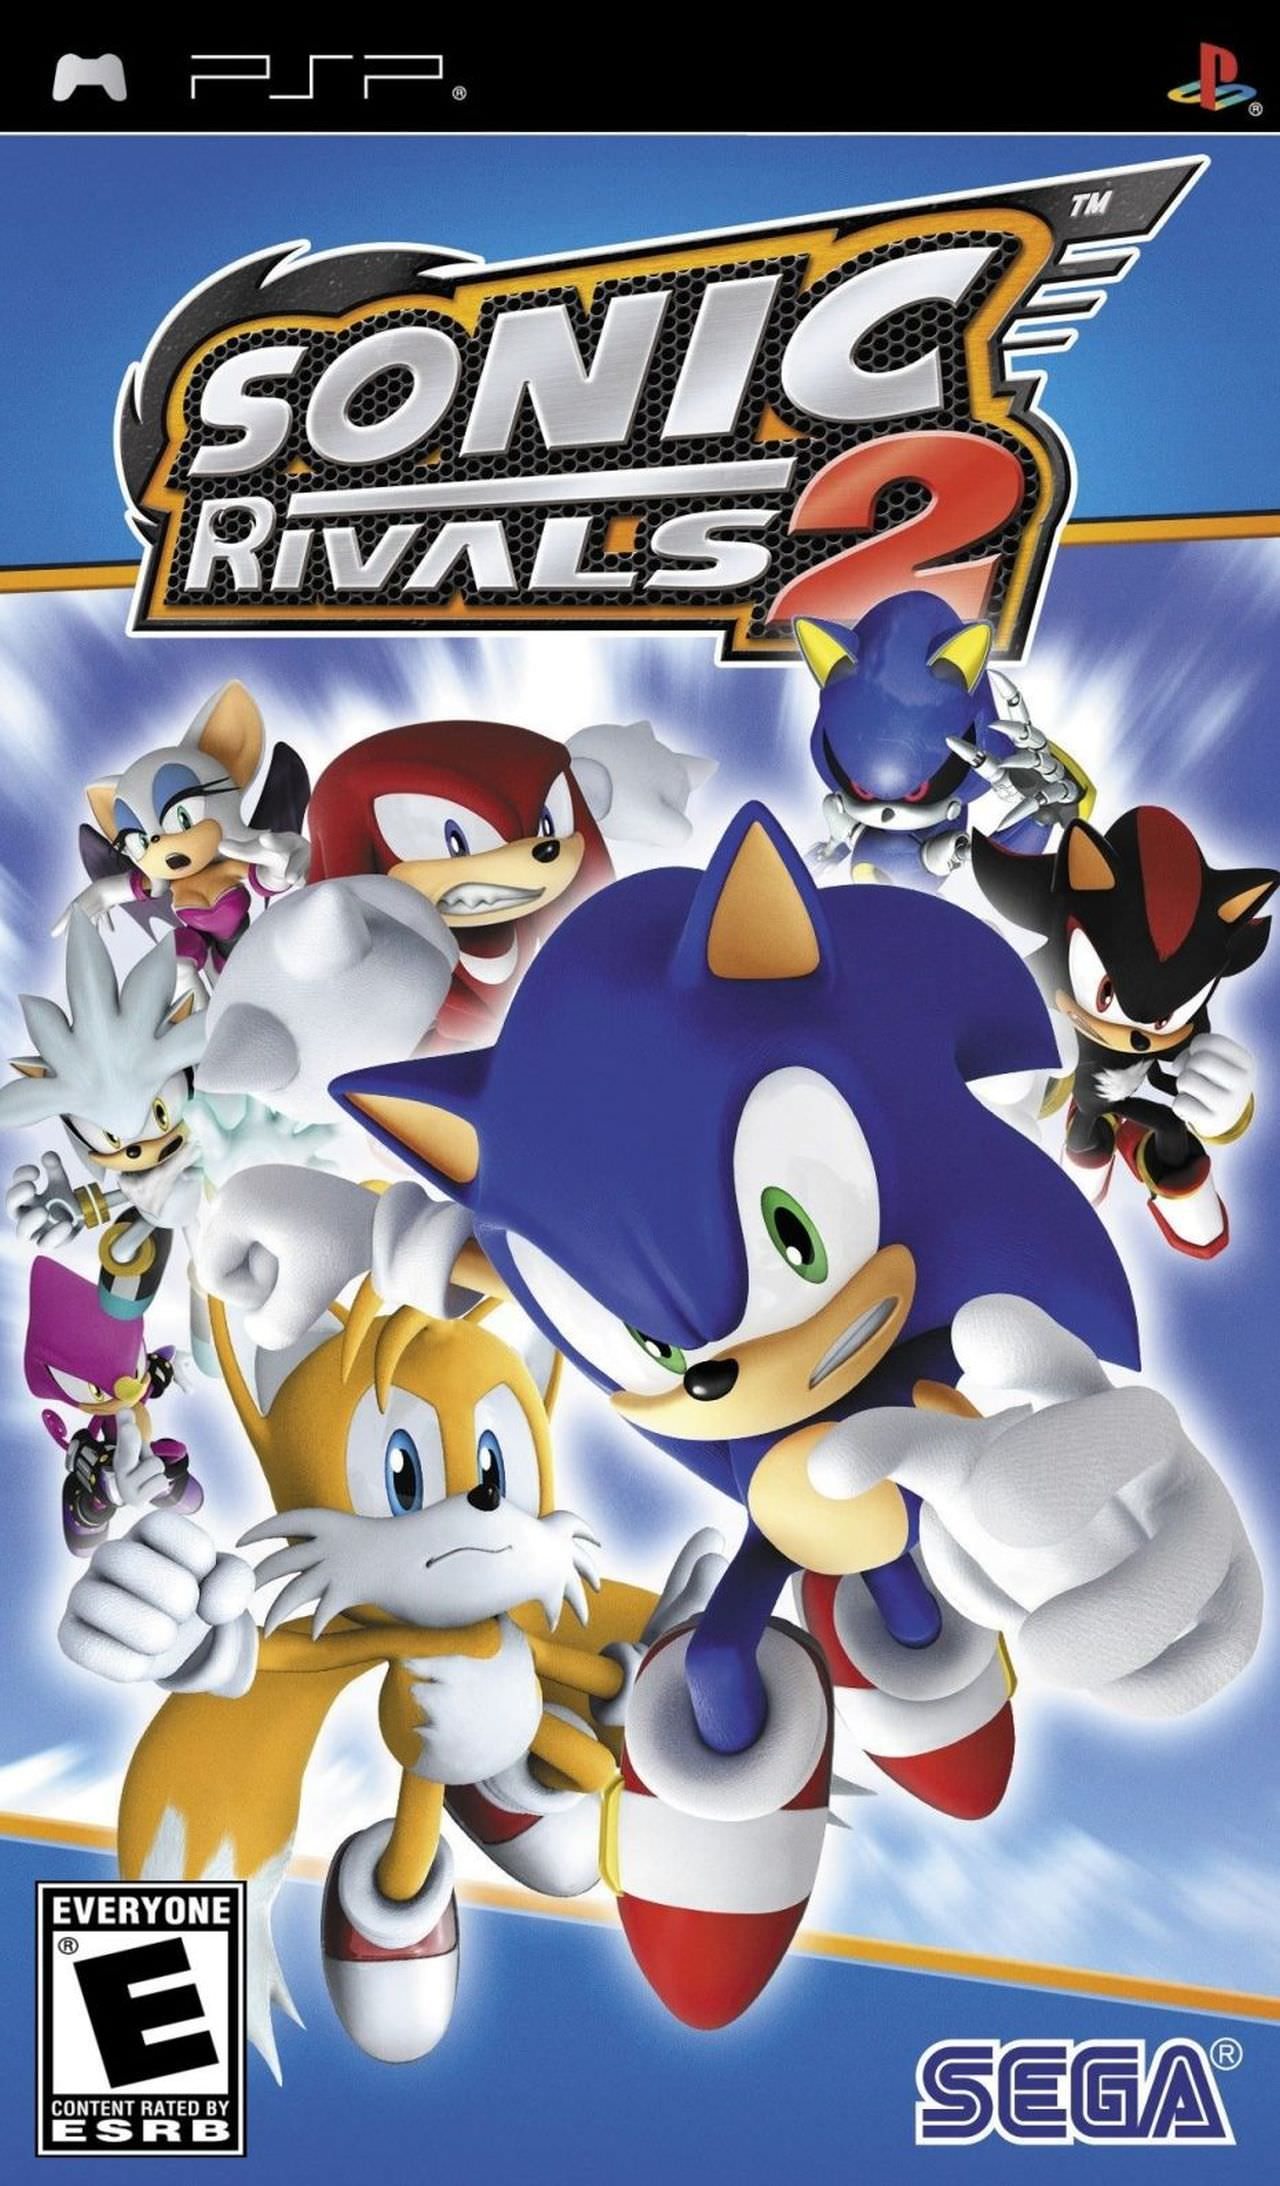 Sonic Rivals 2 Playstation Portable Psp Isos Rom Download